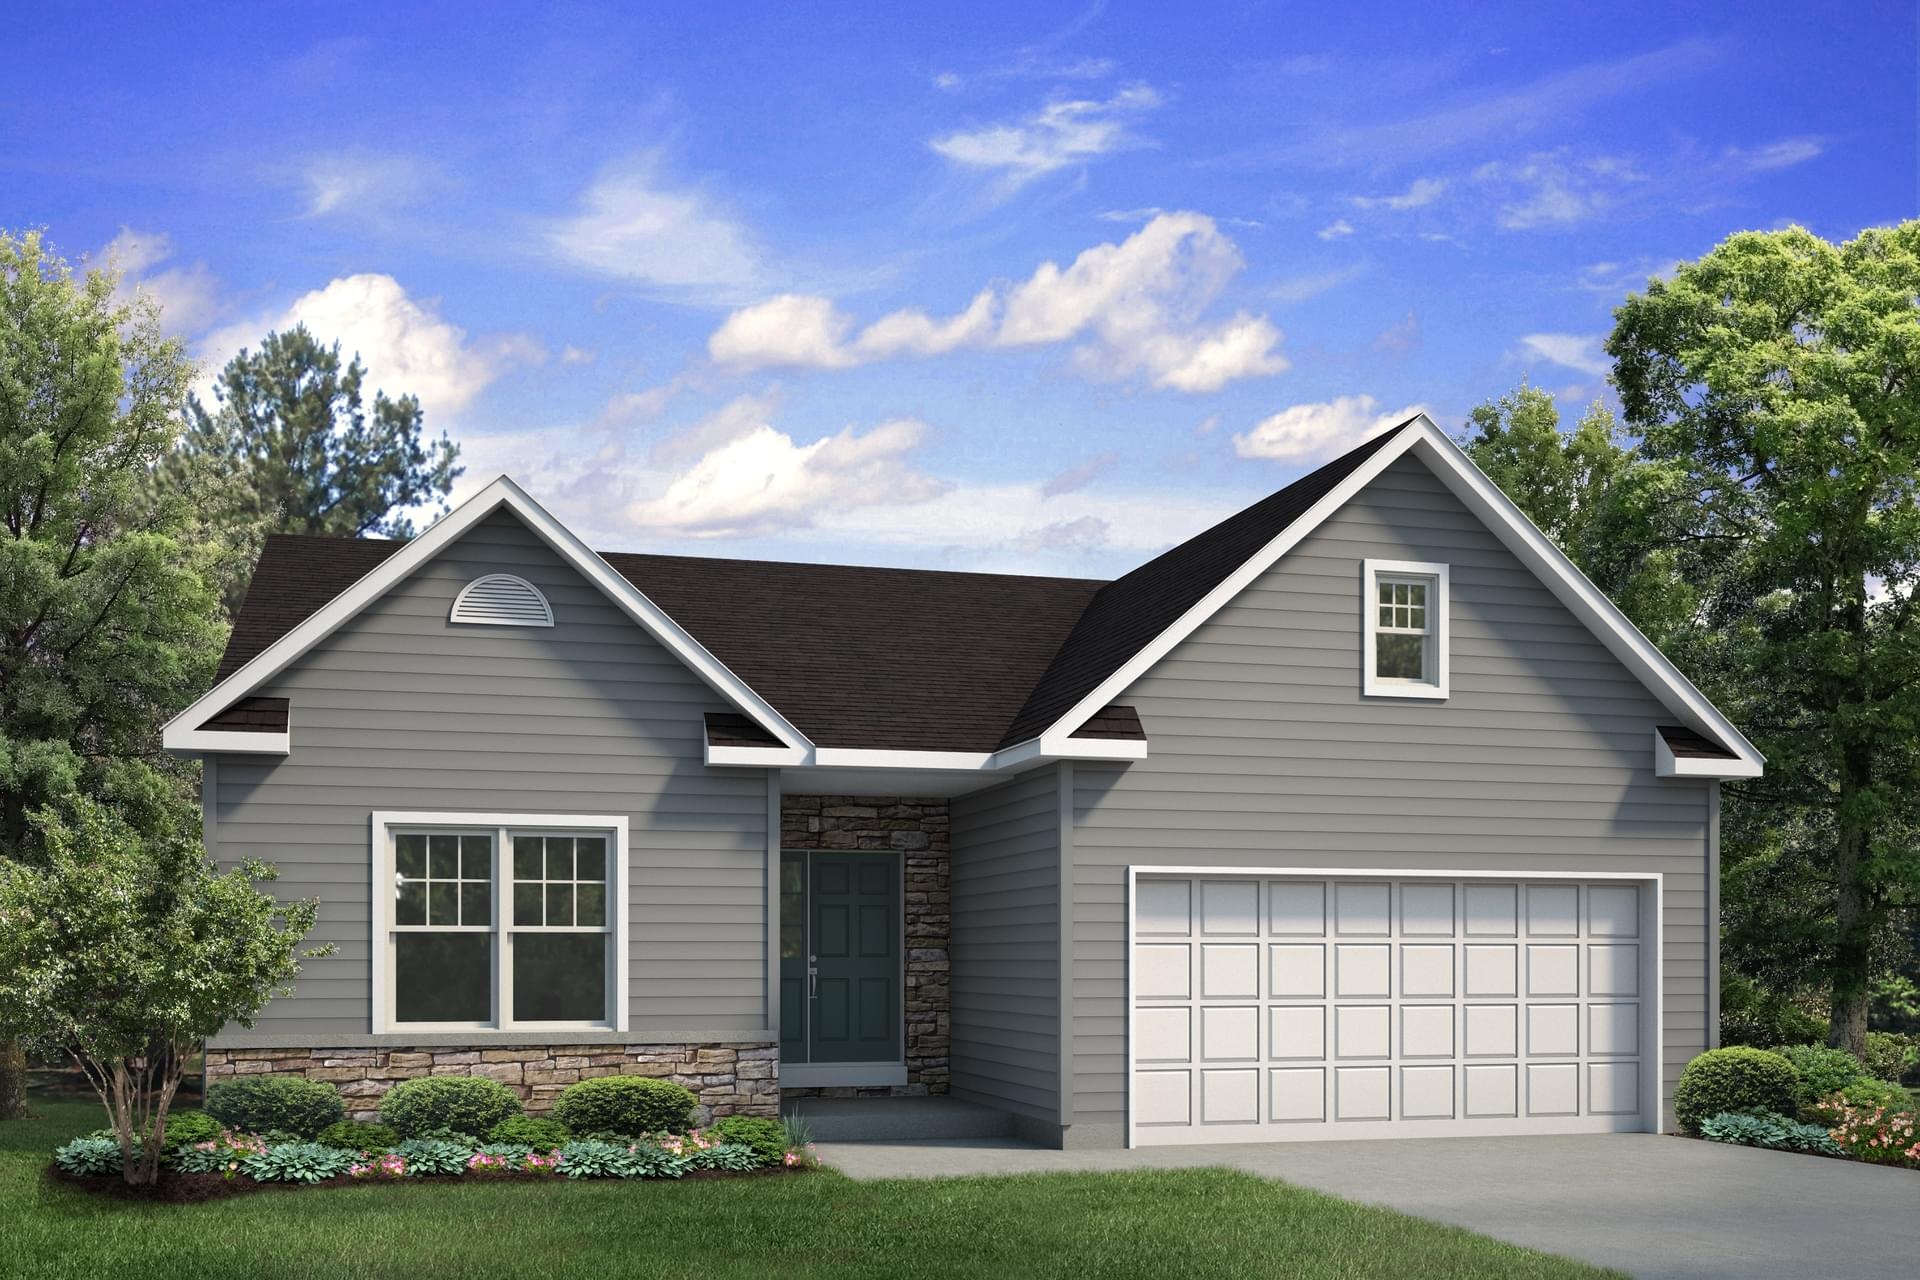 The Pinehurst New Home in Drums PA - Sand Springs